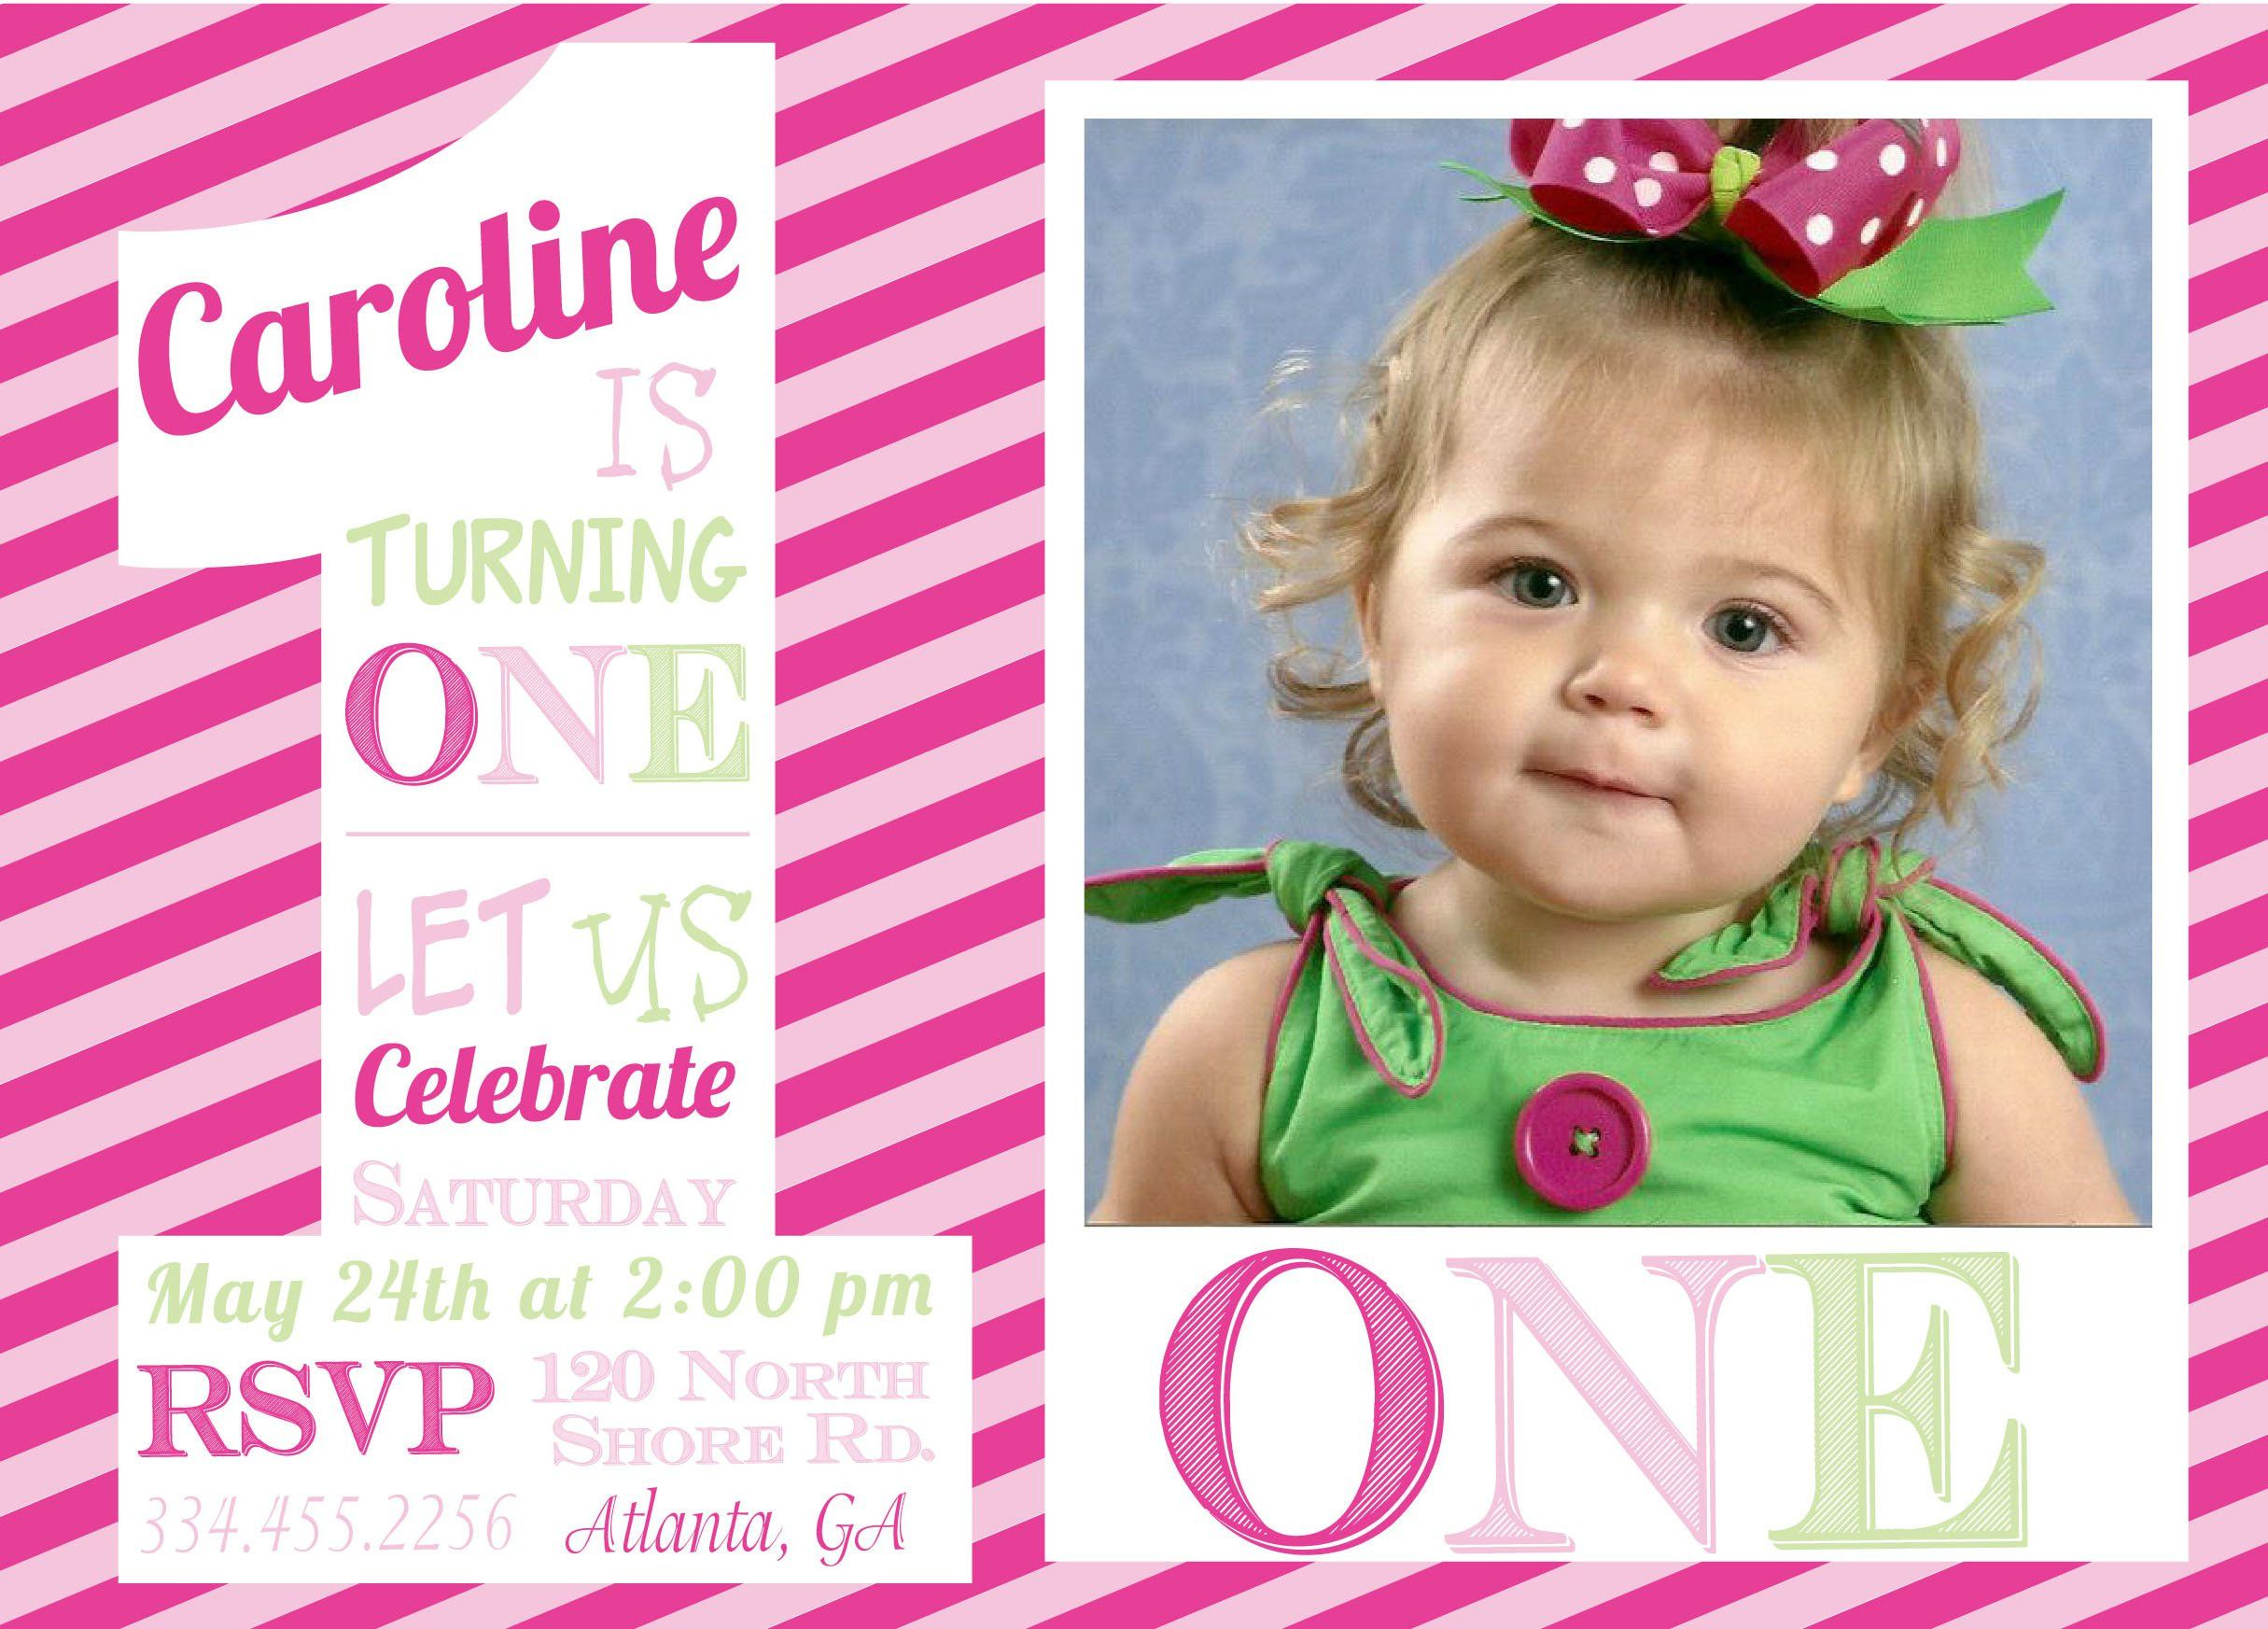 Birthday invitation card design photoshop birthday invitations birthday invitation card design photoshop filmwisefo